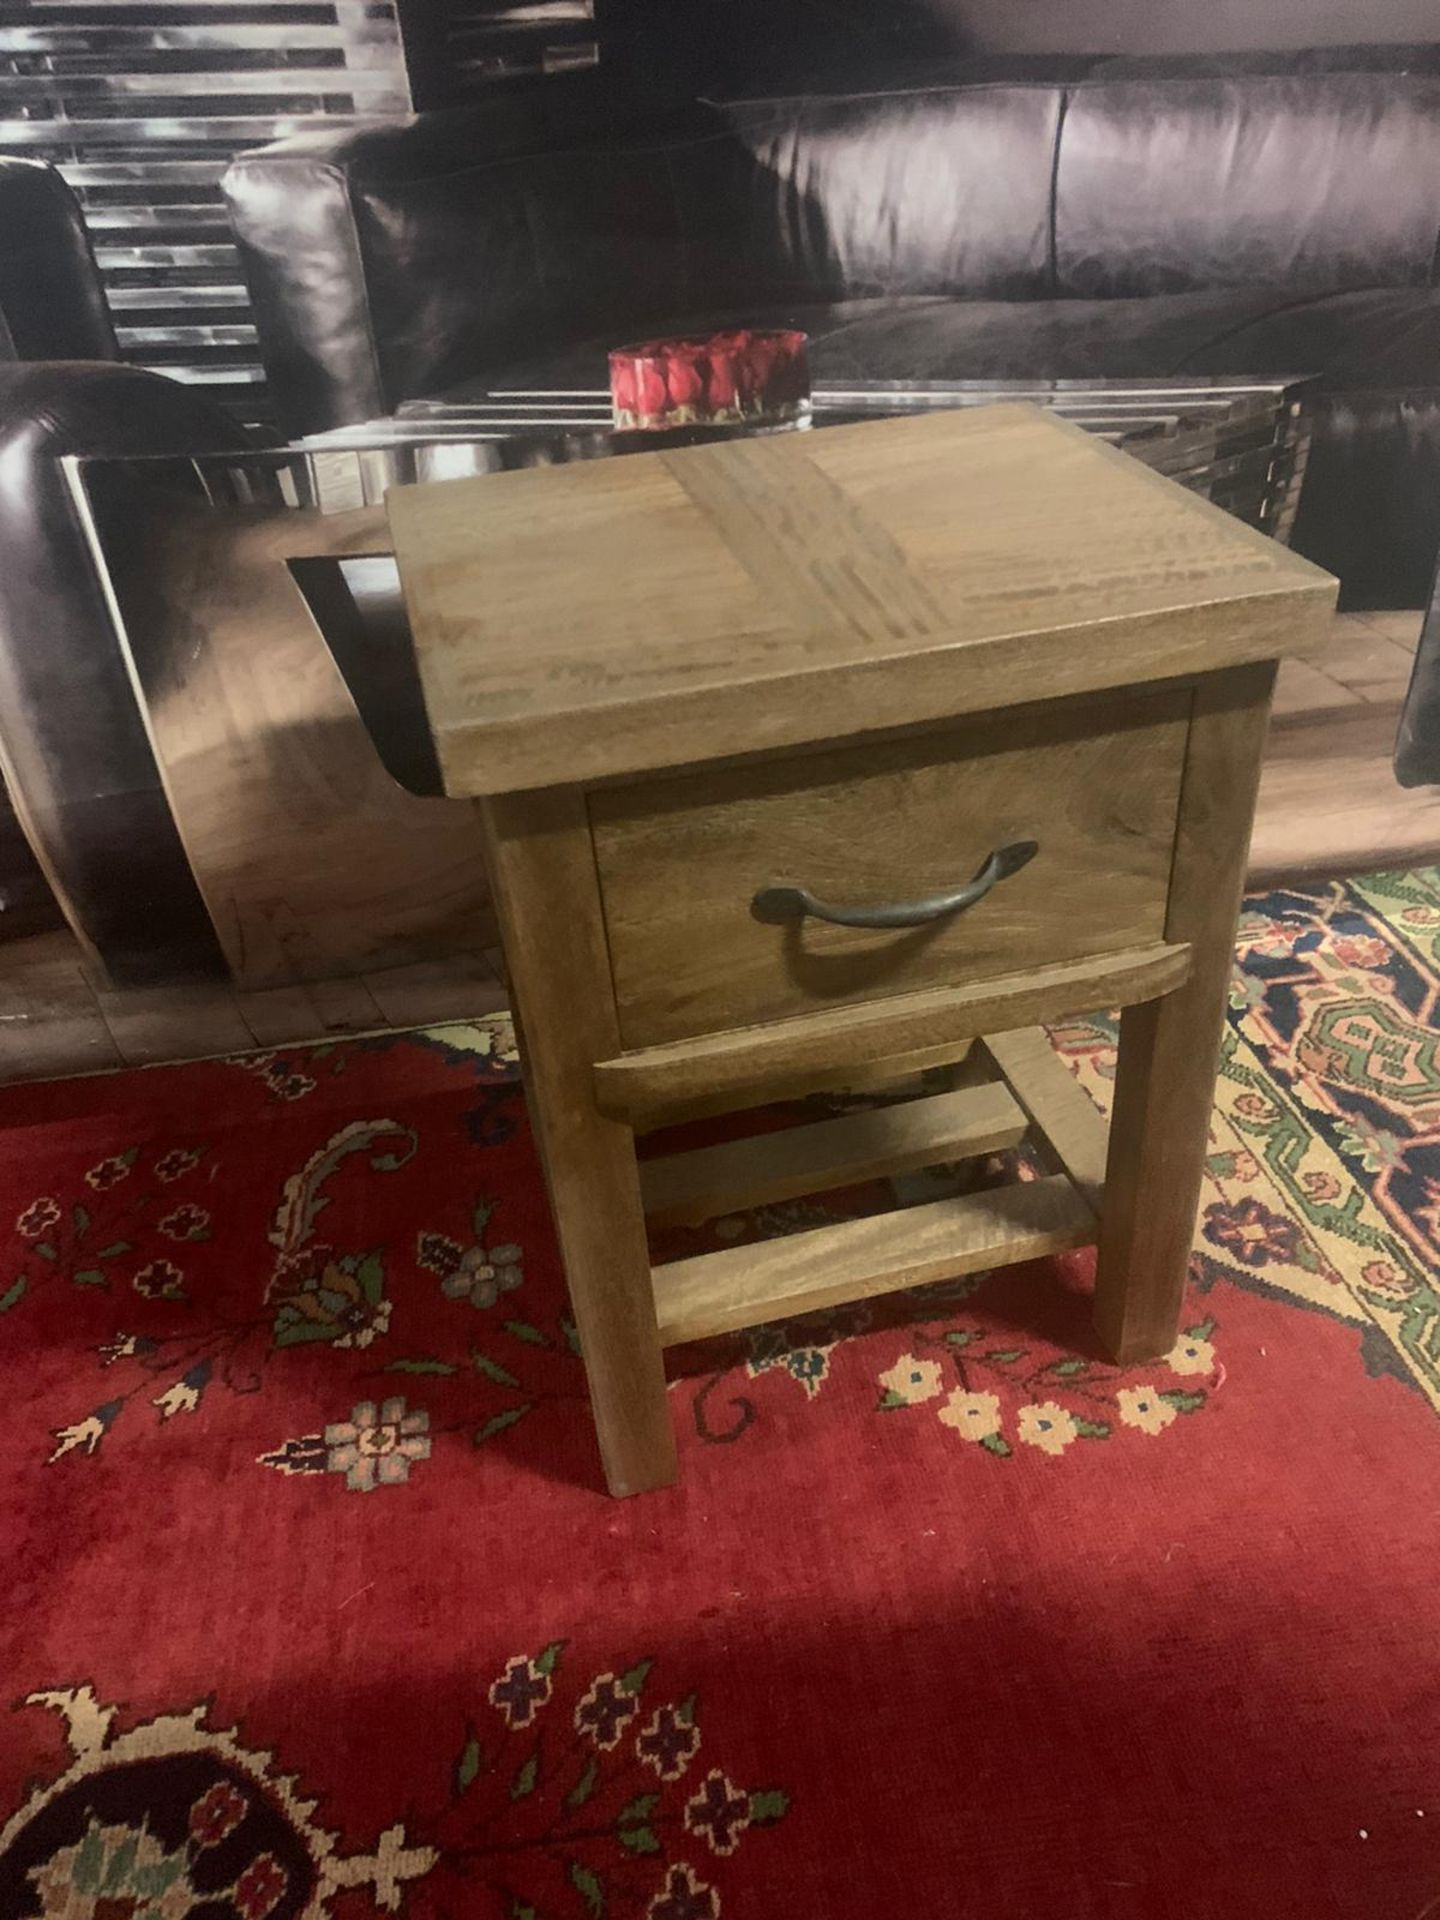 A Pair of Soho Solid Wood Side Table 2 Drawer This Table will complement your decorative scheme - Image 5 of 5